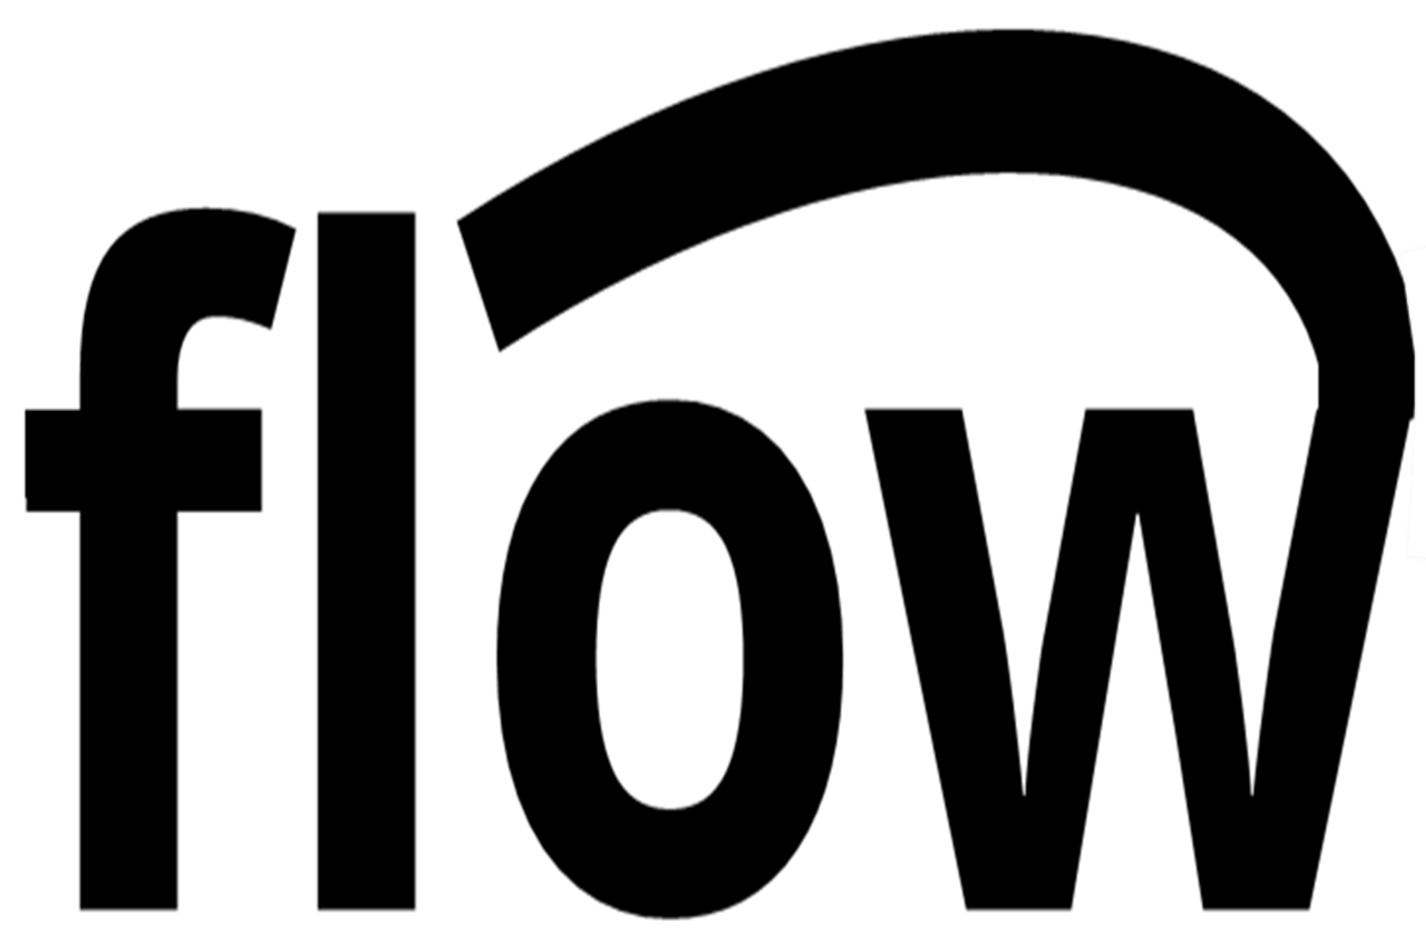 File:Flow WLM text logo black.png.